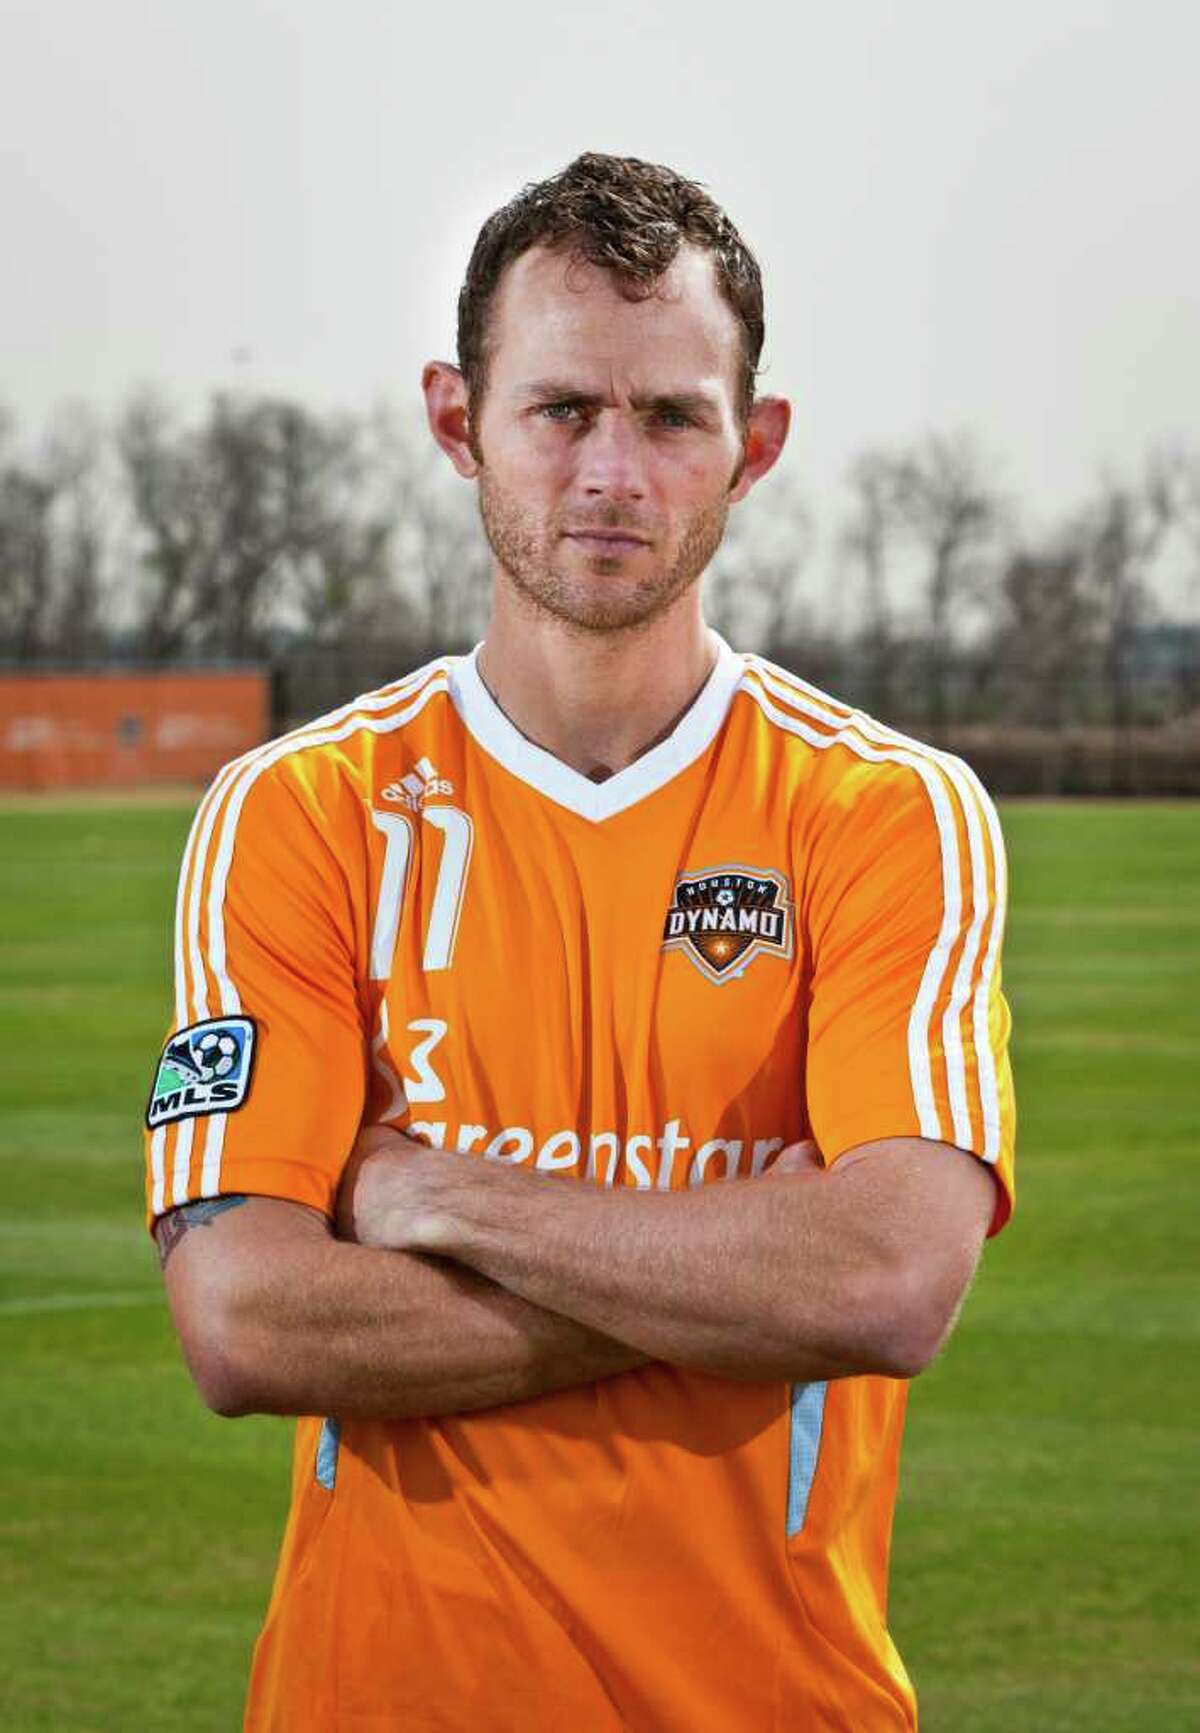 Houston Dynamo midfielder Brad Davis poses for a portrait during the Dynamo's first training session of the 2012 season at Houston Amateur Sports Park's Methodist Champions Field on Monday, Jan. 23, 2012, in Houston. The Dynamo will open their season on February 24 against Sporting Kansas City. ( Andrew Richardson / For The Chronicle )